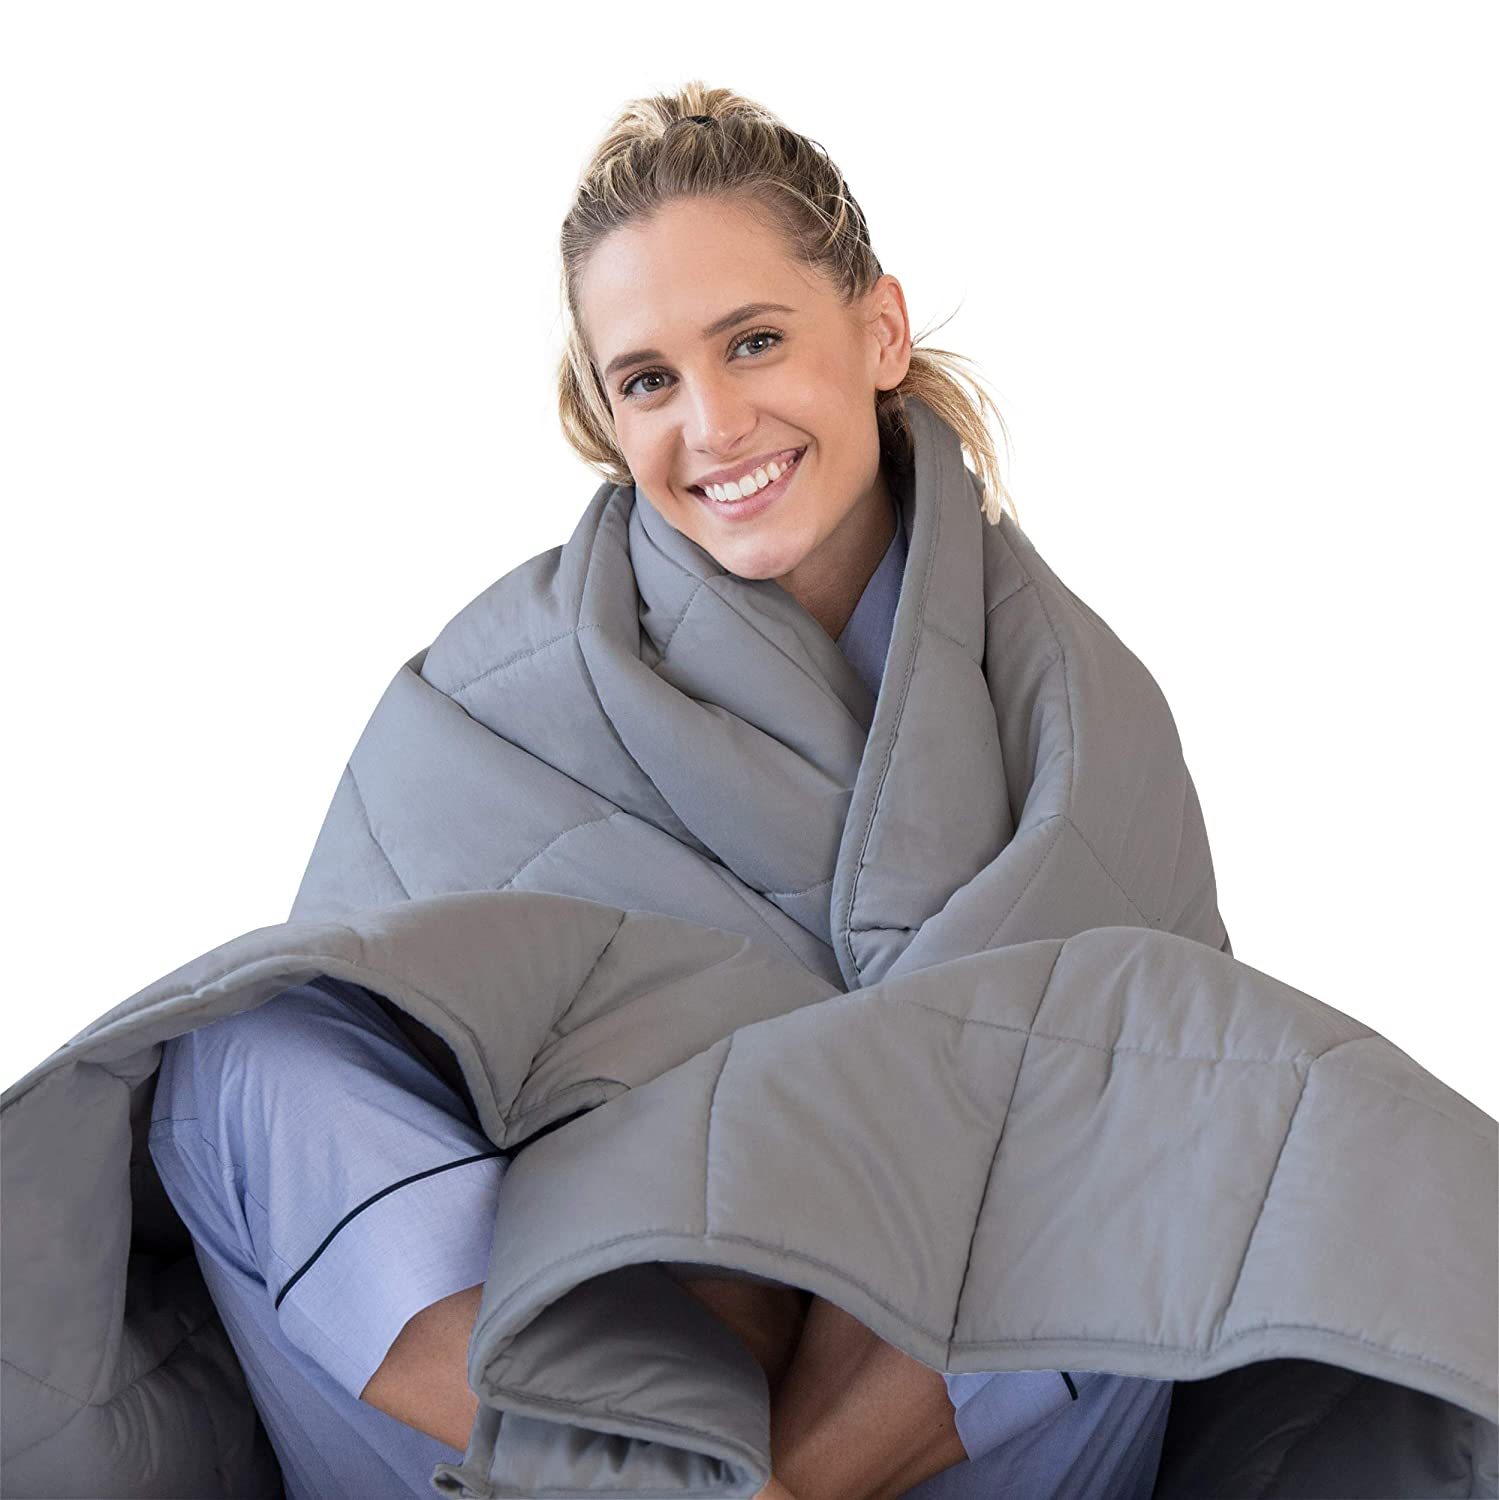 LUNA Adult Weighted Blanket | 12 lbs - 48x72 - Full Size Bed | 100% Oeko-Tex Certified Cooling Cotton & Premium Glass Beads | Designed in USA | Heavy Cool Weight for Hot & Cold Sleepers | Dark Grey